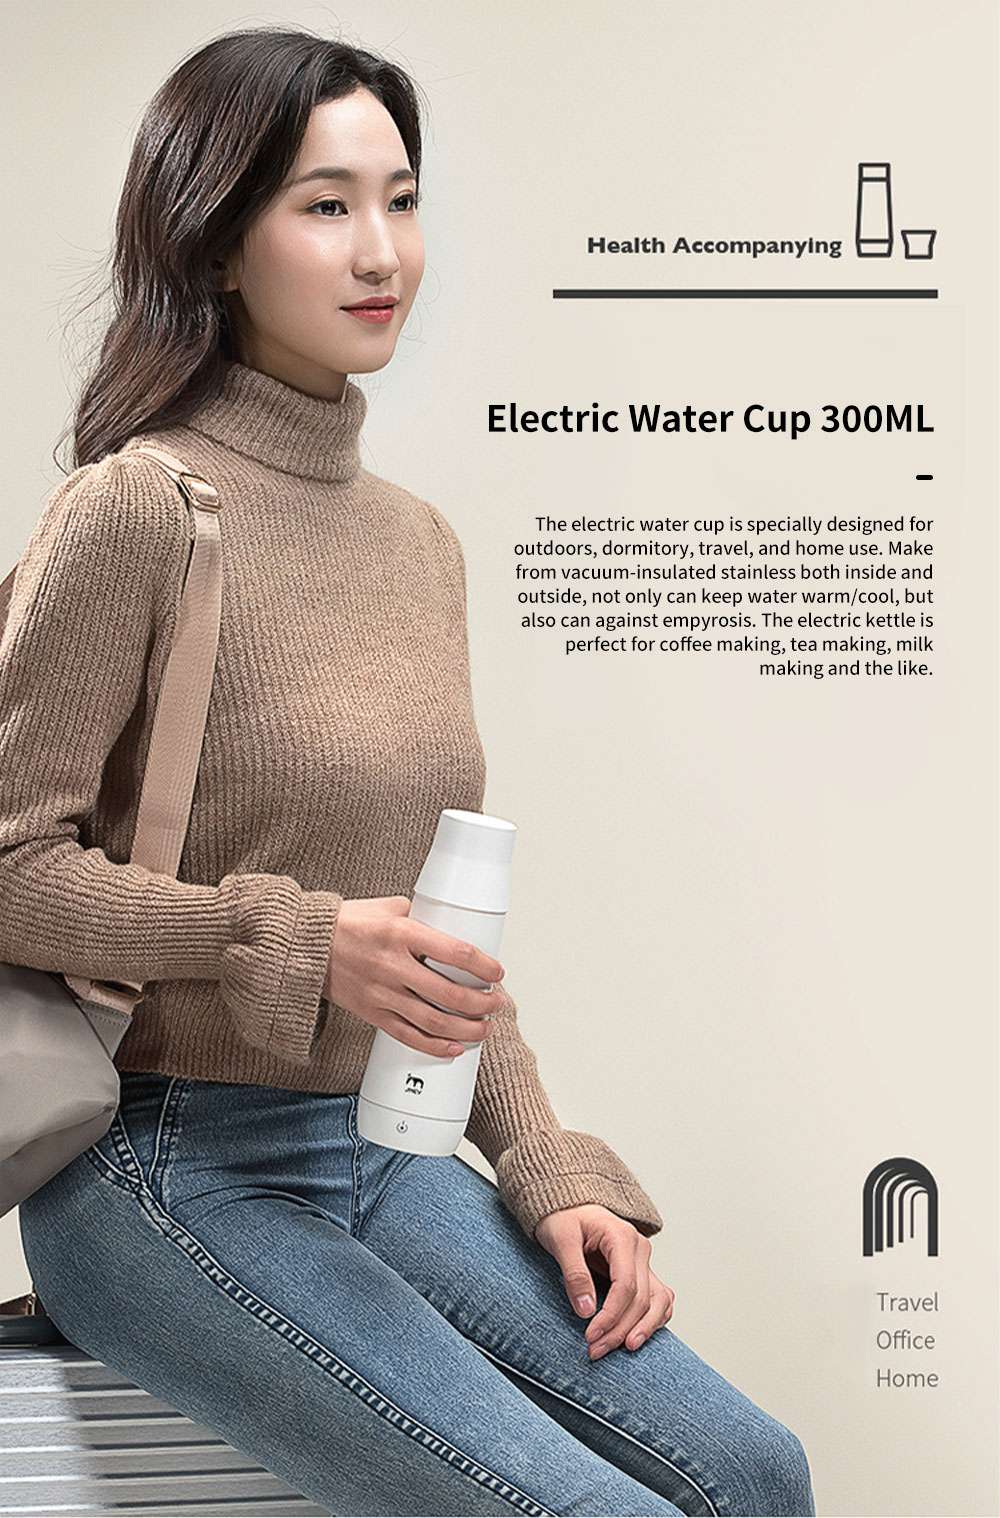 Portable Thermostatic Electric Water Cup 300ML Mini Folding Vacuum Cup for Dormitory Travel Home Use Warm Electric Kettle 0